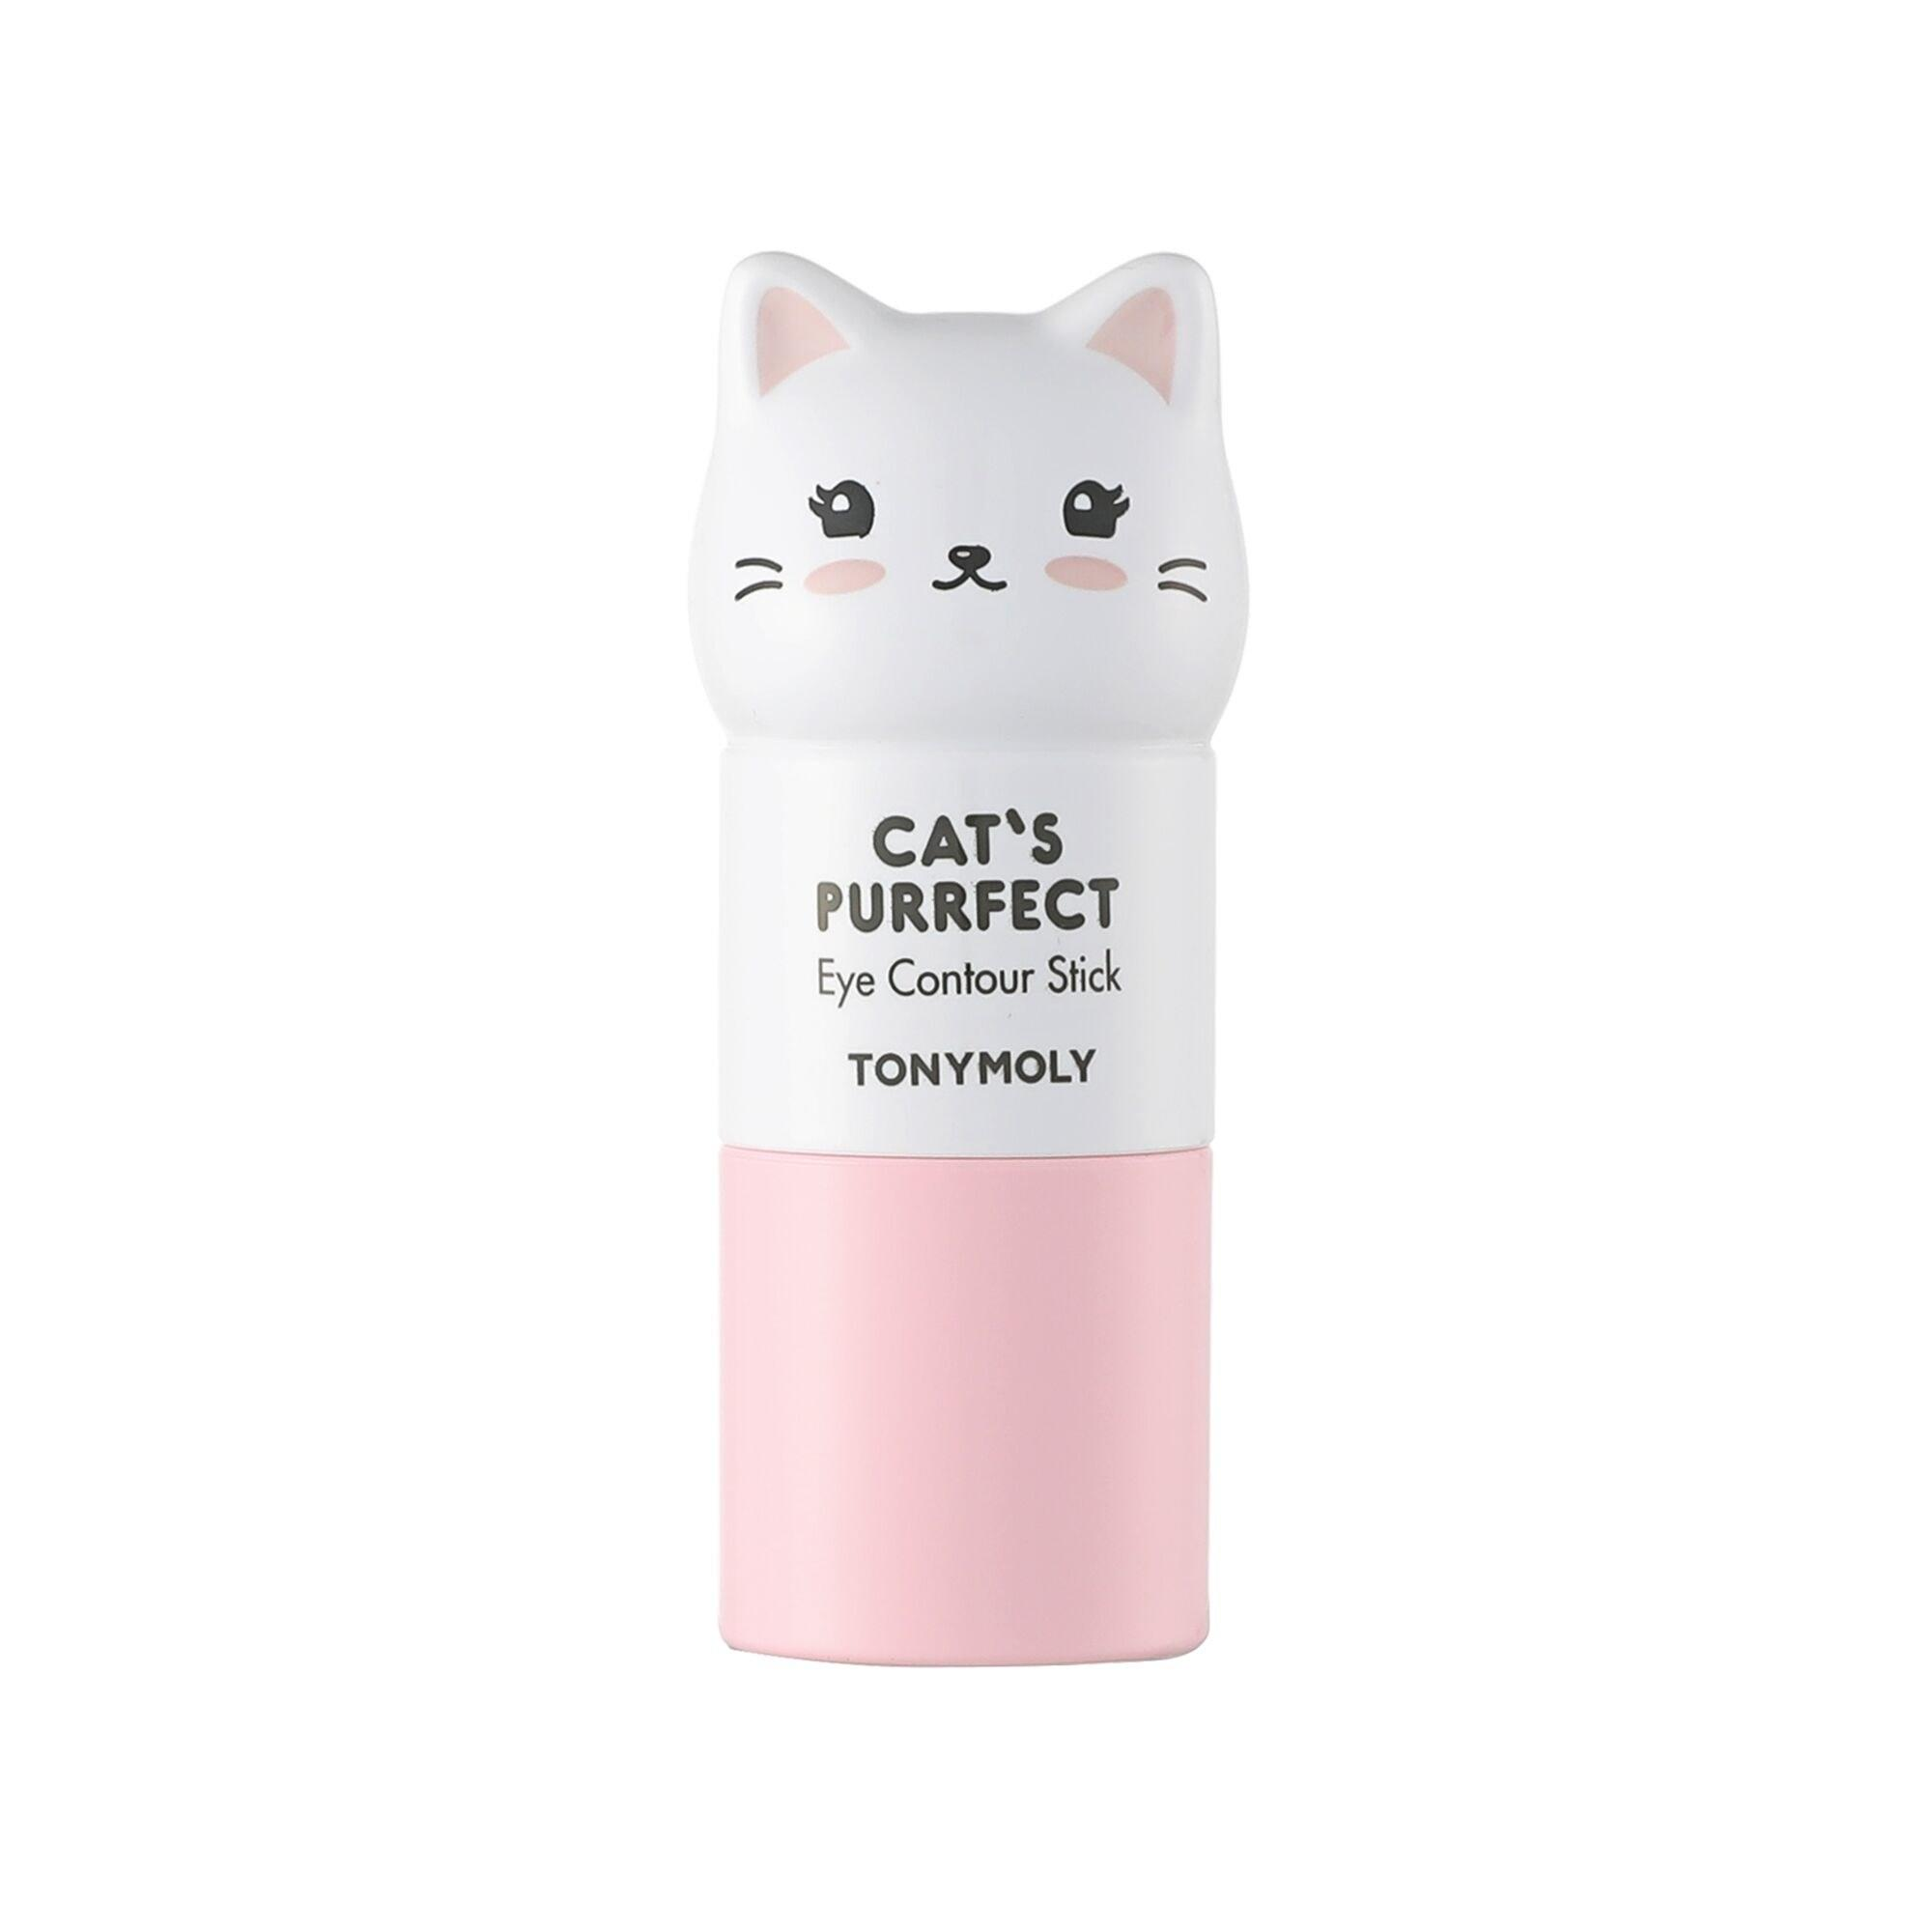 "<p>Brighten your under-eyes with TonyMoly's Cat's Purrfect Eye Contour Stick, which offers a subtle illuminated effect and reduces puffiness with the help of royal jelly and a well-spring of skin-loving extracts like orange peel, honeysuckle, and bergamot fruit.</p> <p>$13 (<a href=""https://shop-links.co/1677194001257356963"" rel=""nofollow noopener"" target=""_blank"" data-ylk=""slk:Shop Now"" class=""link rapid-noclick-resp"">Shop Now</a>)</p>"